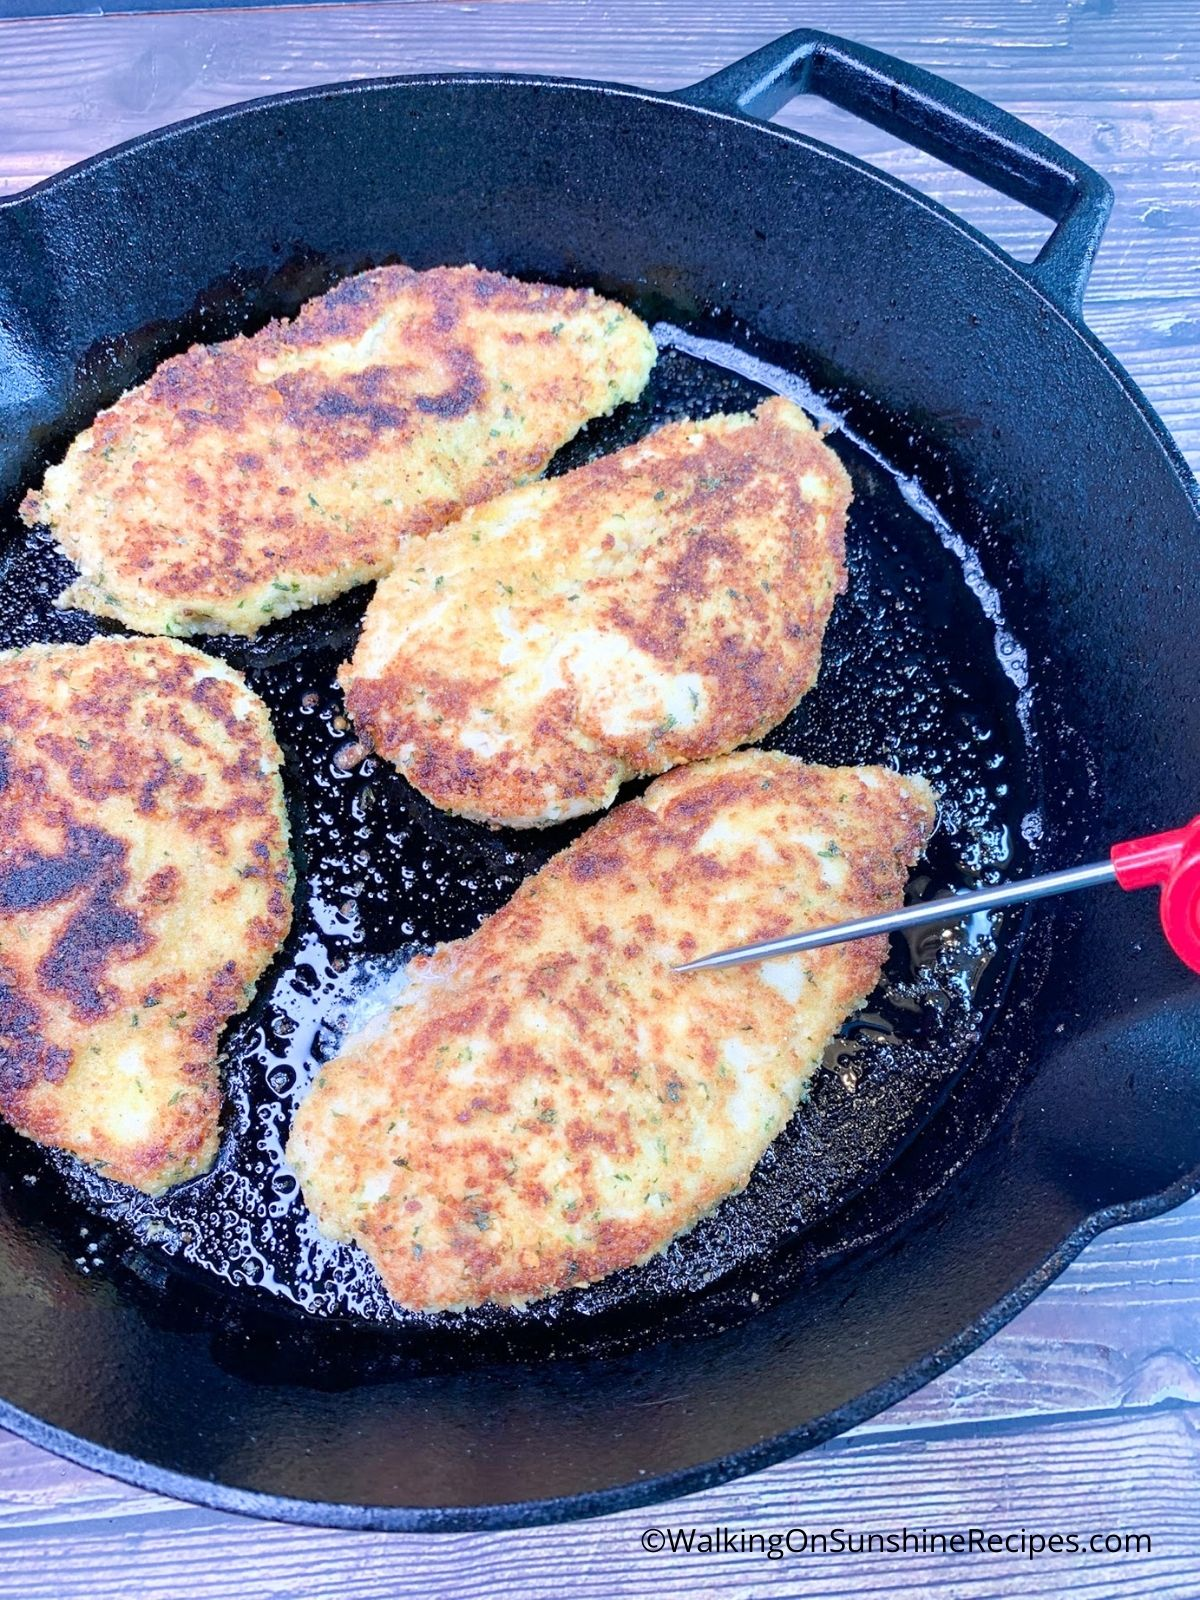 Cooked Perdue chicken cutlets in cast iron skillet.